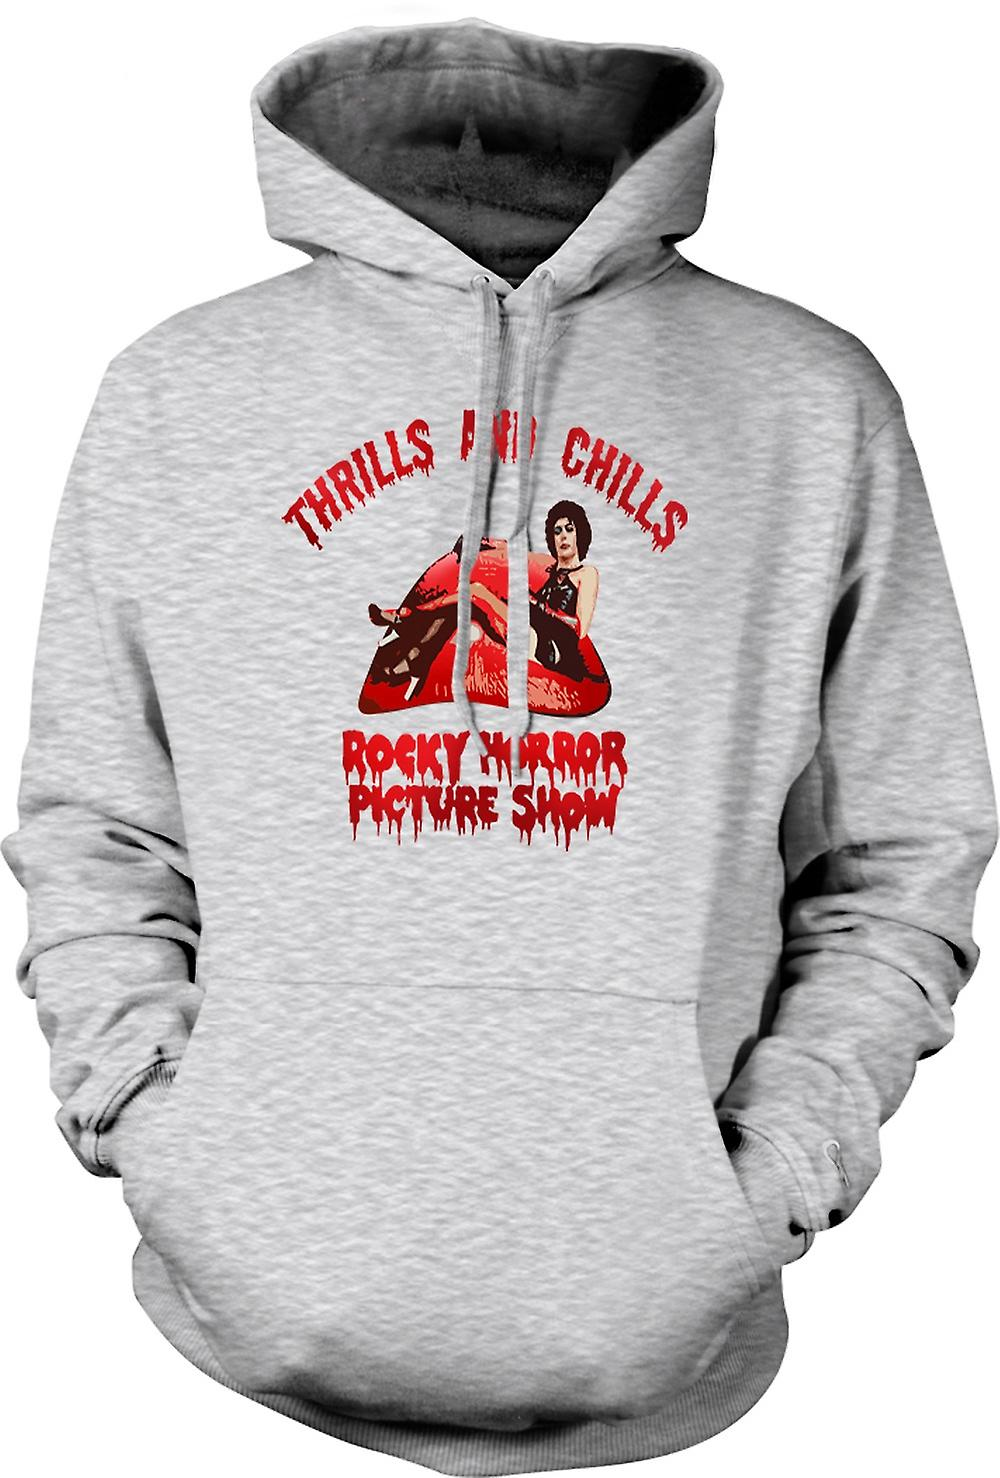 Mens Hoodie - Thrills Frissons Rocky Horror Picture